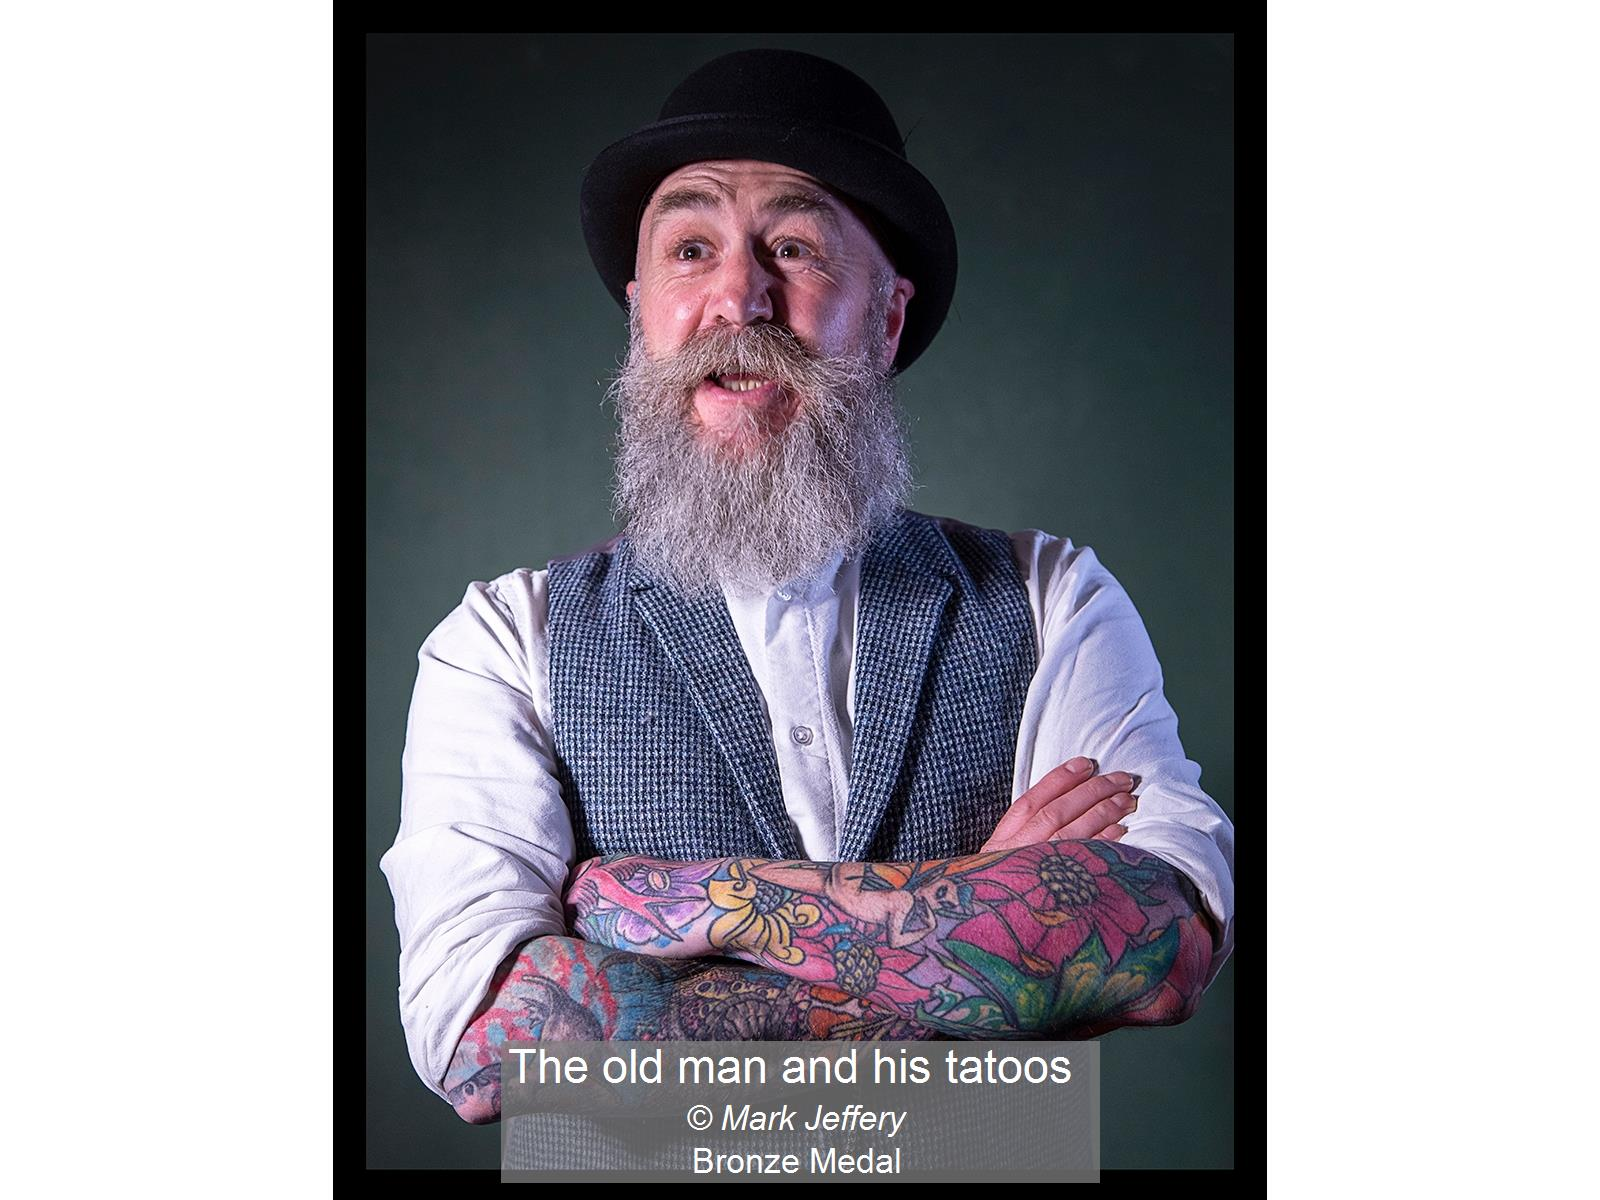 The old man and his tatoos_Mark Jeffery_